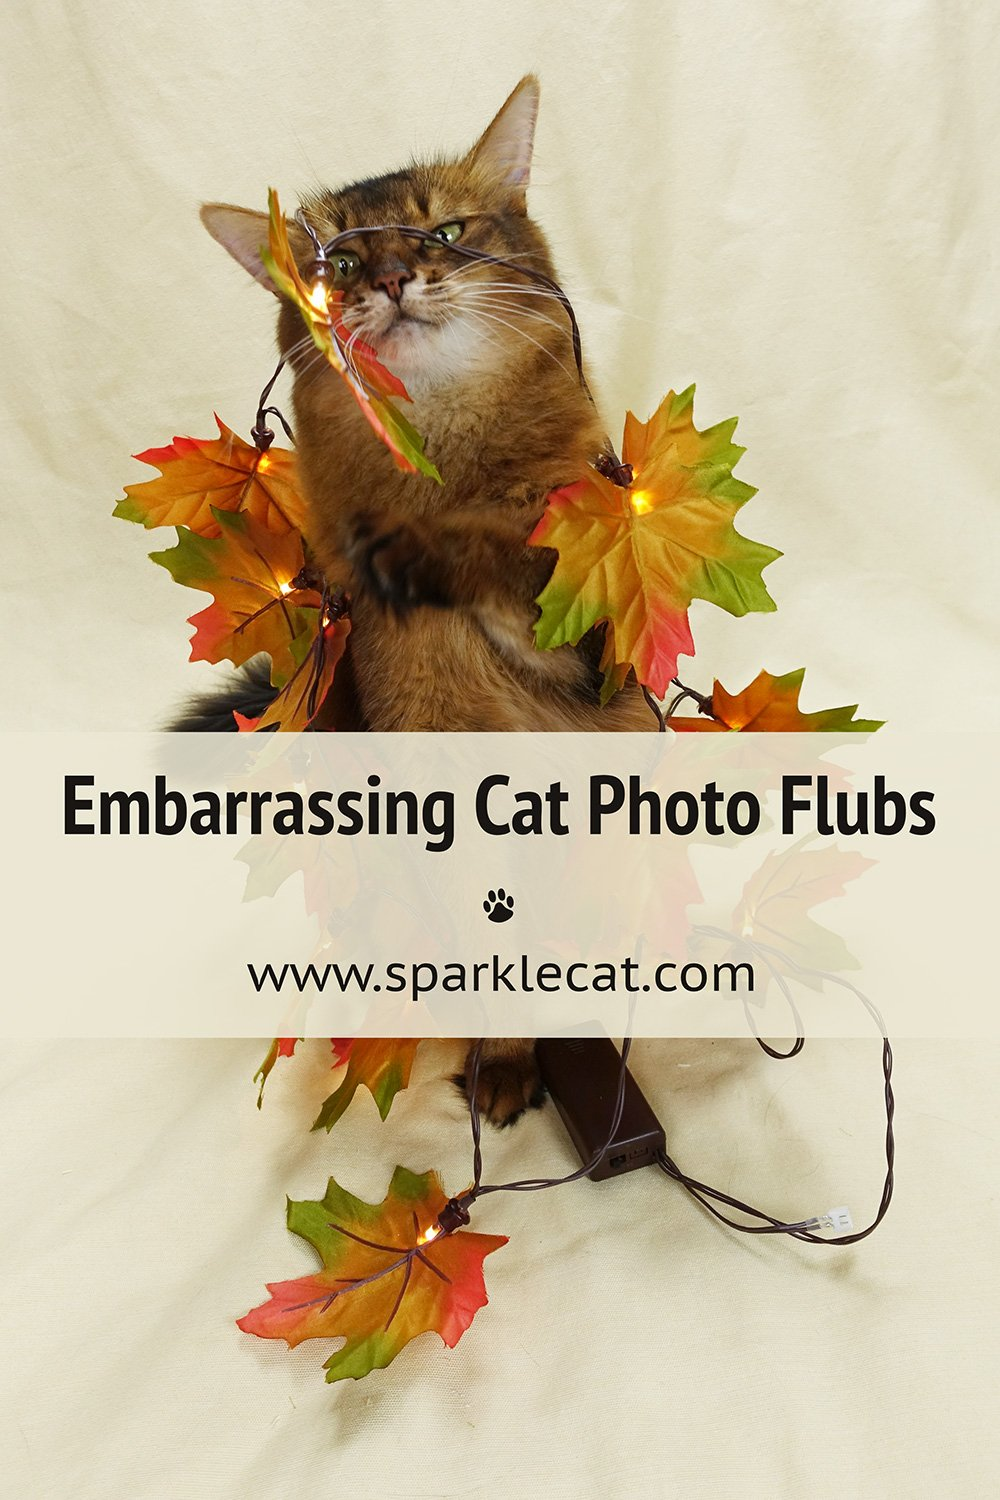 Embarrassing Photo Flubs